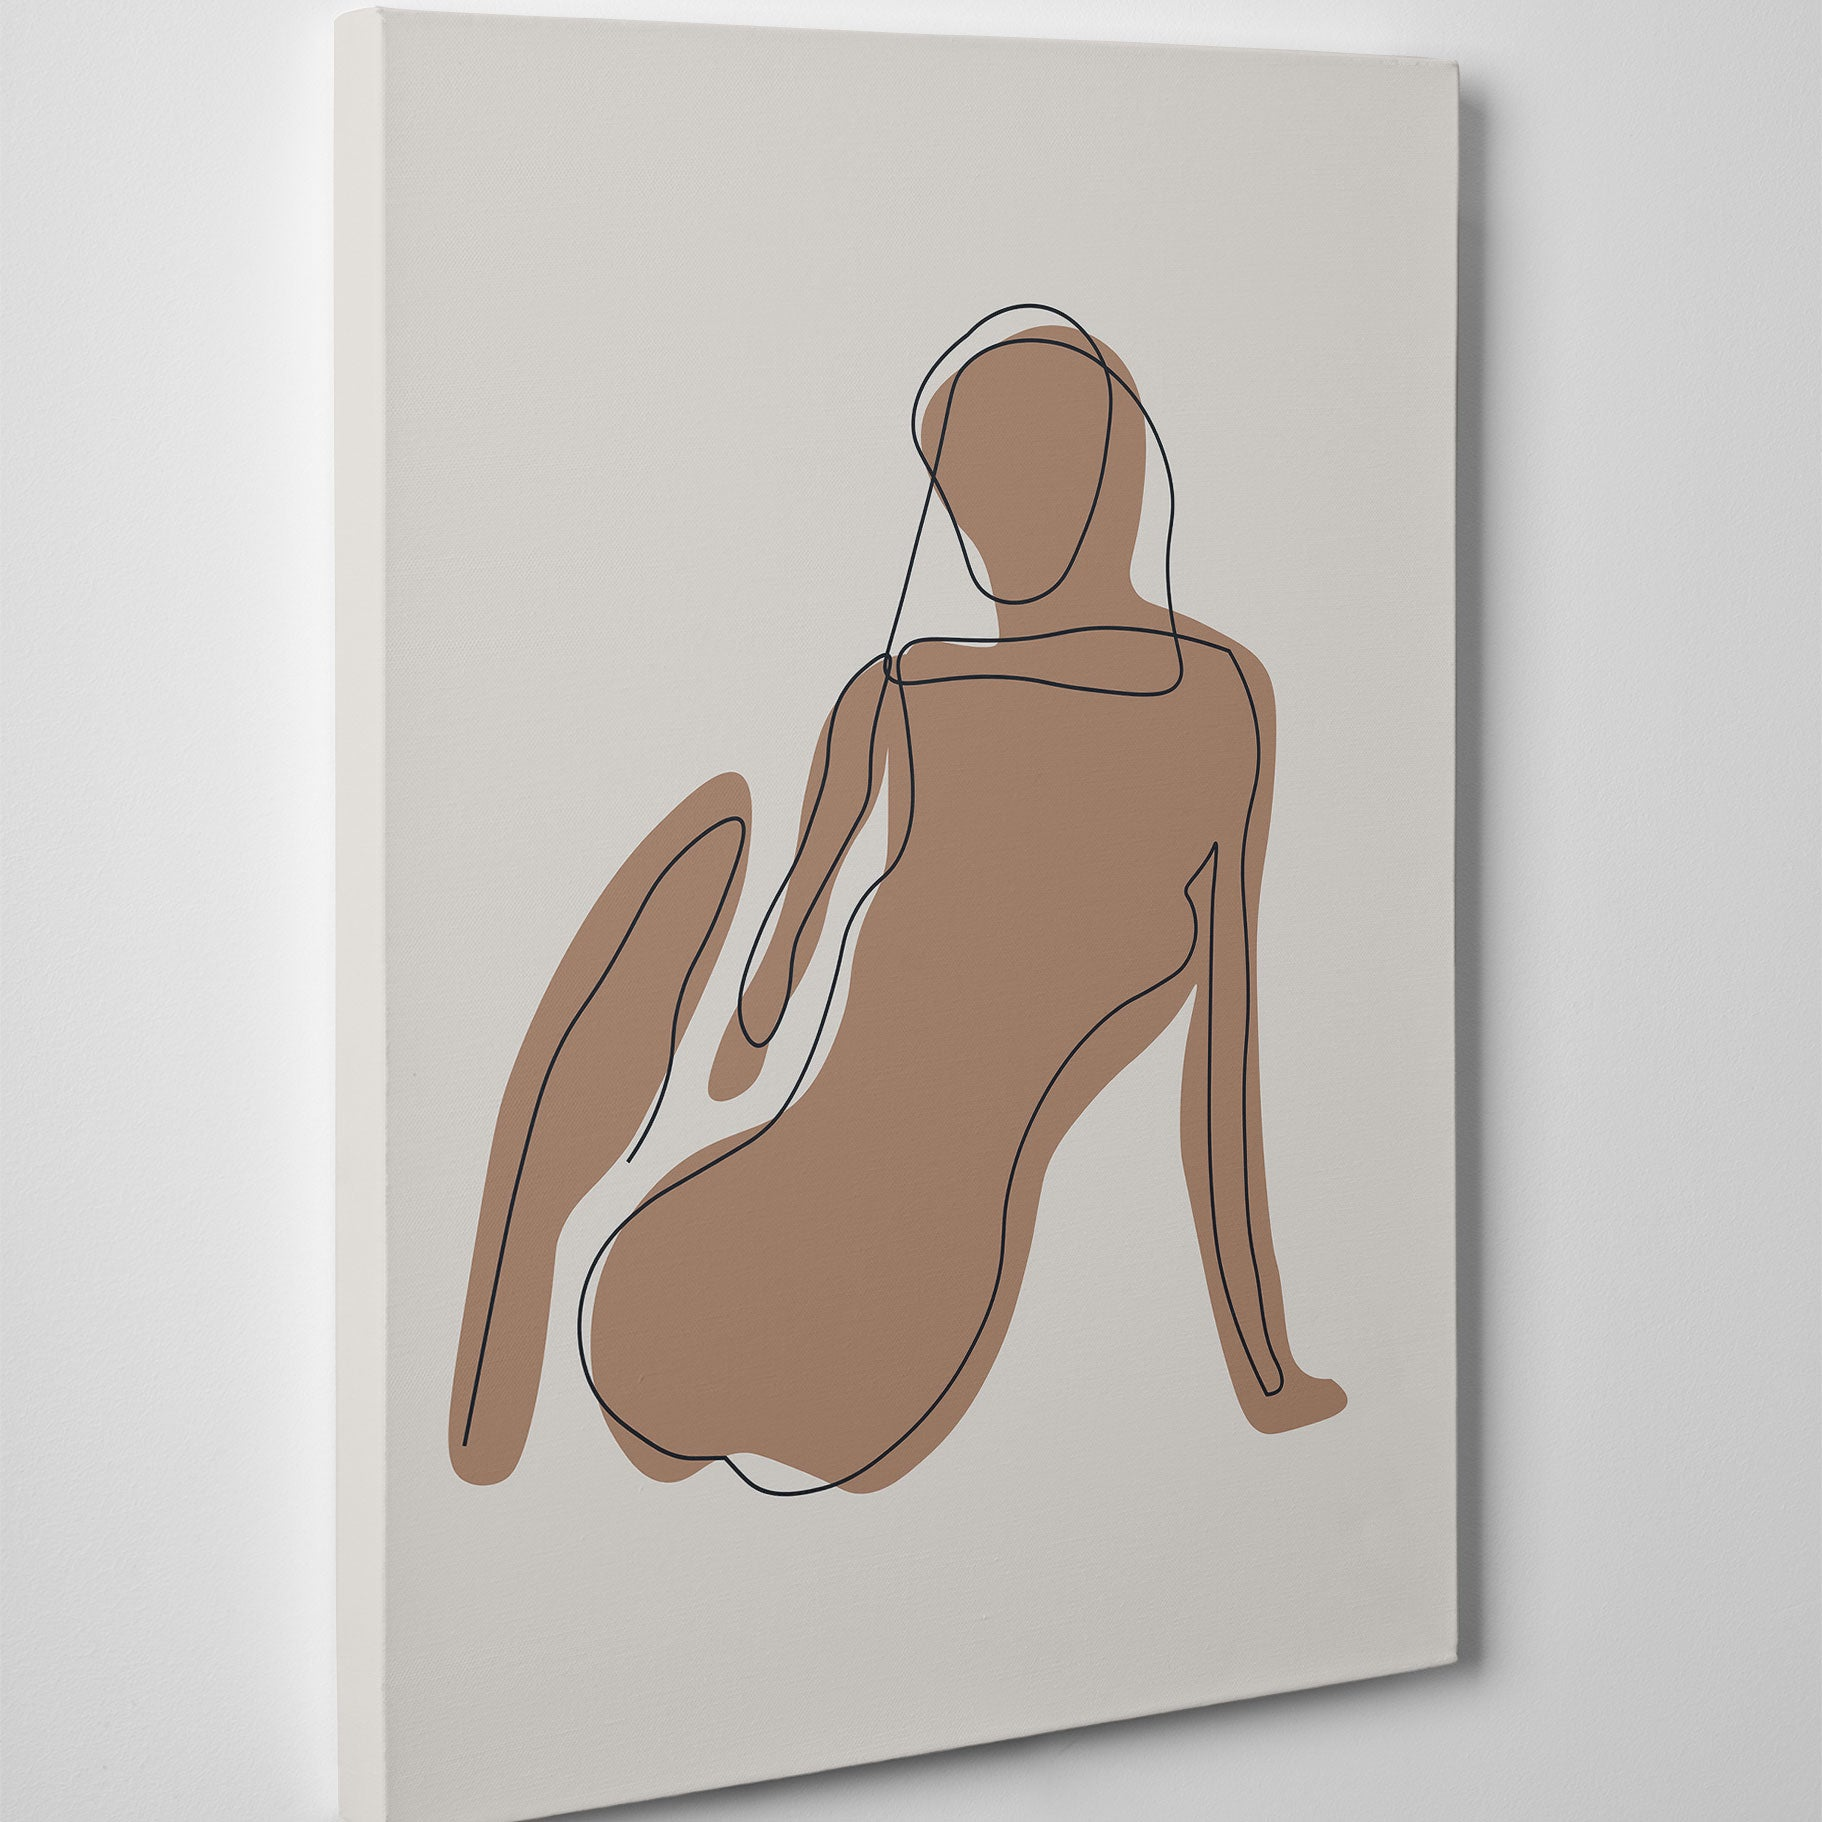 Black line art canvas print with a woman on natural tones - side view